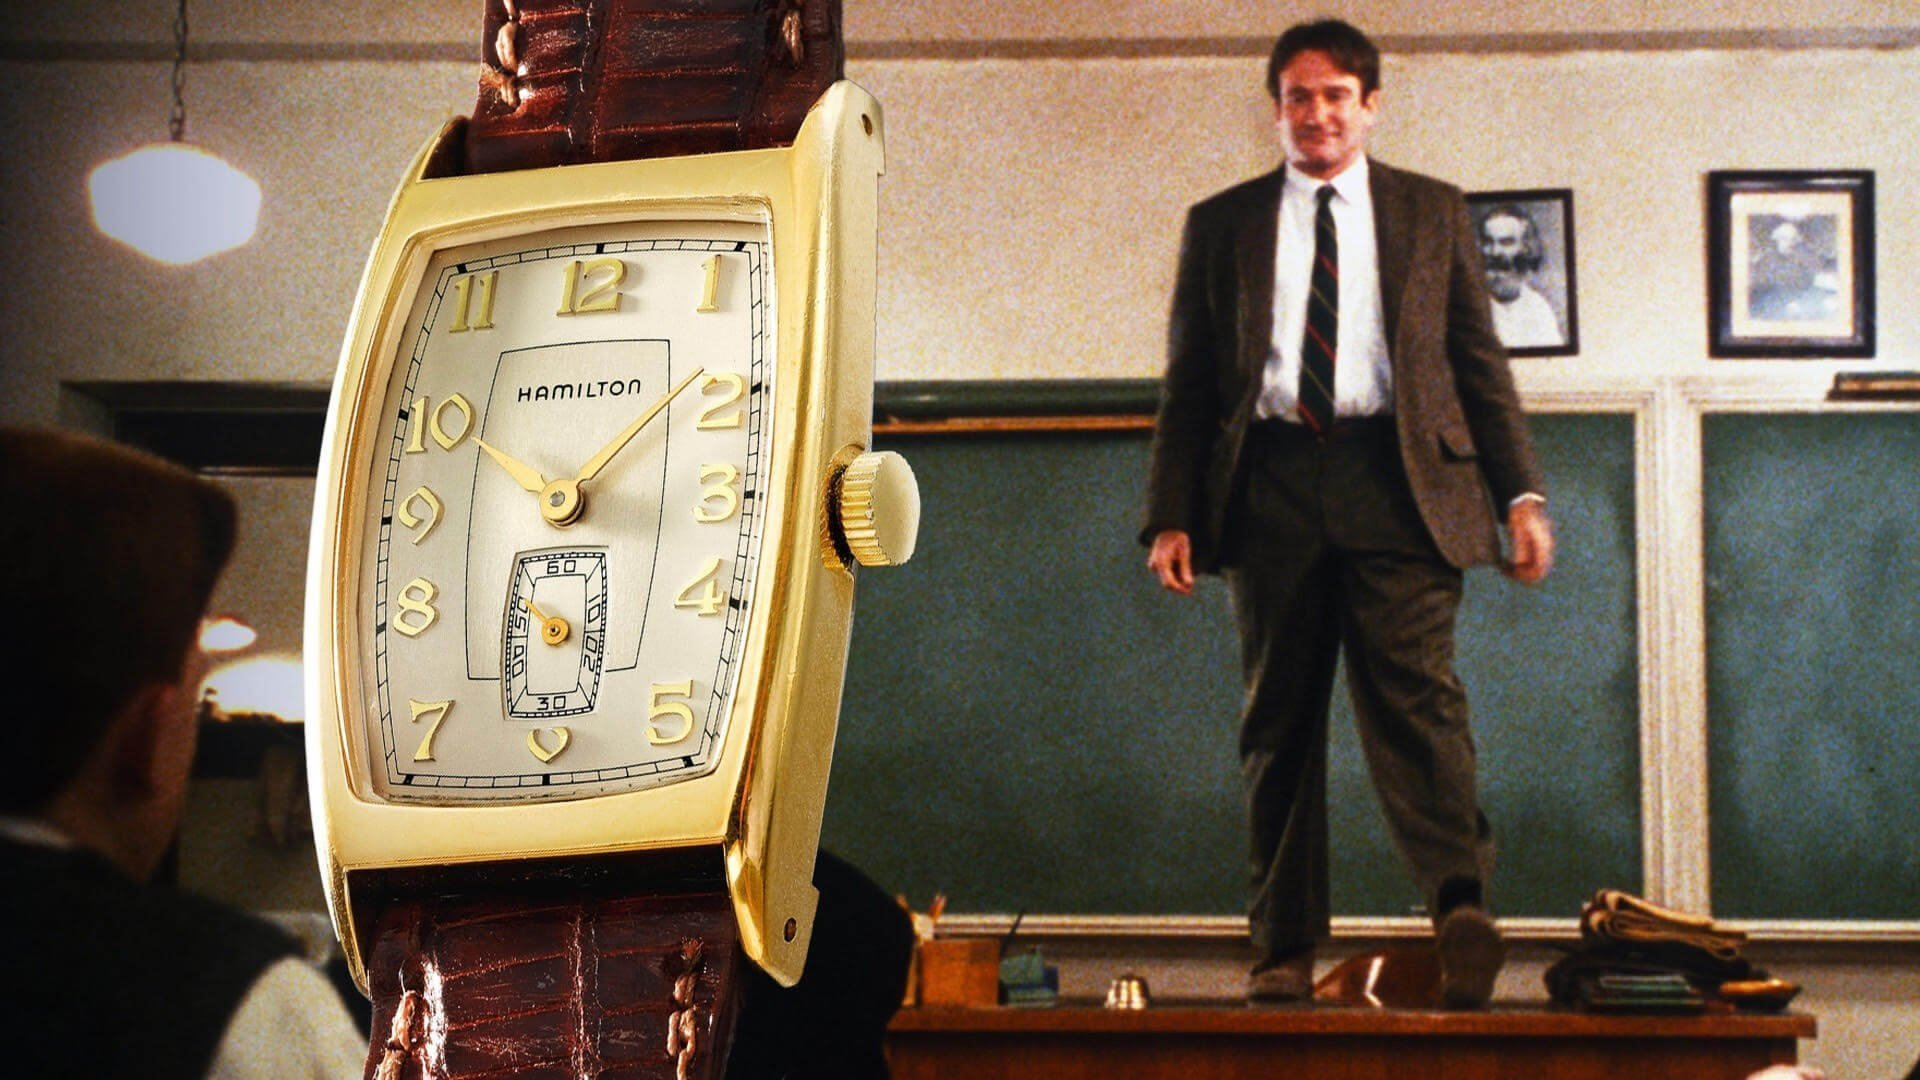 Liquor Run: Robin Williams' $30,000 Hamilton Wristwatch